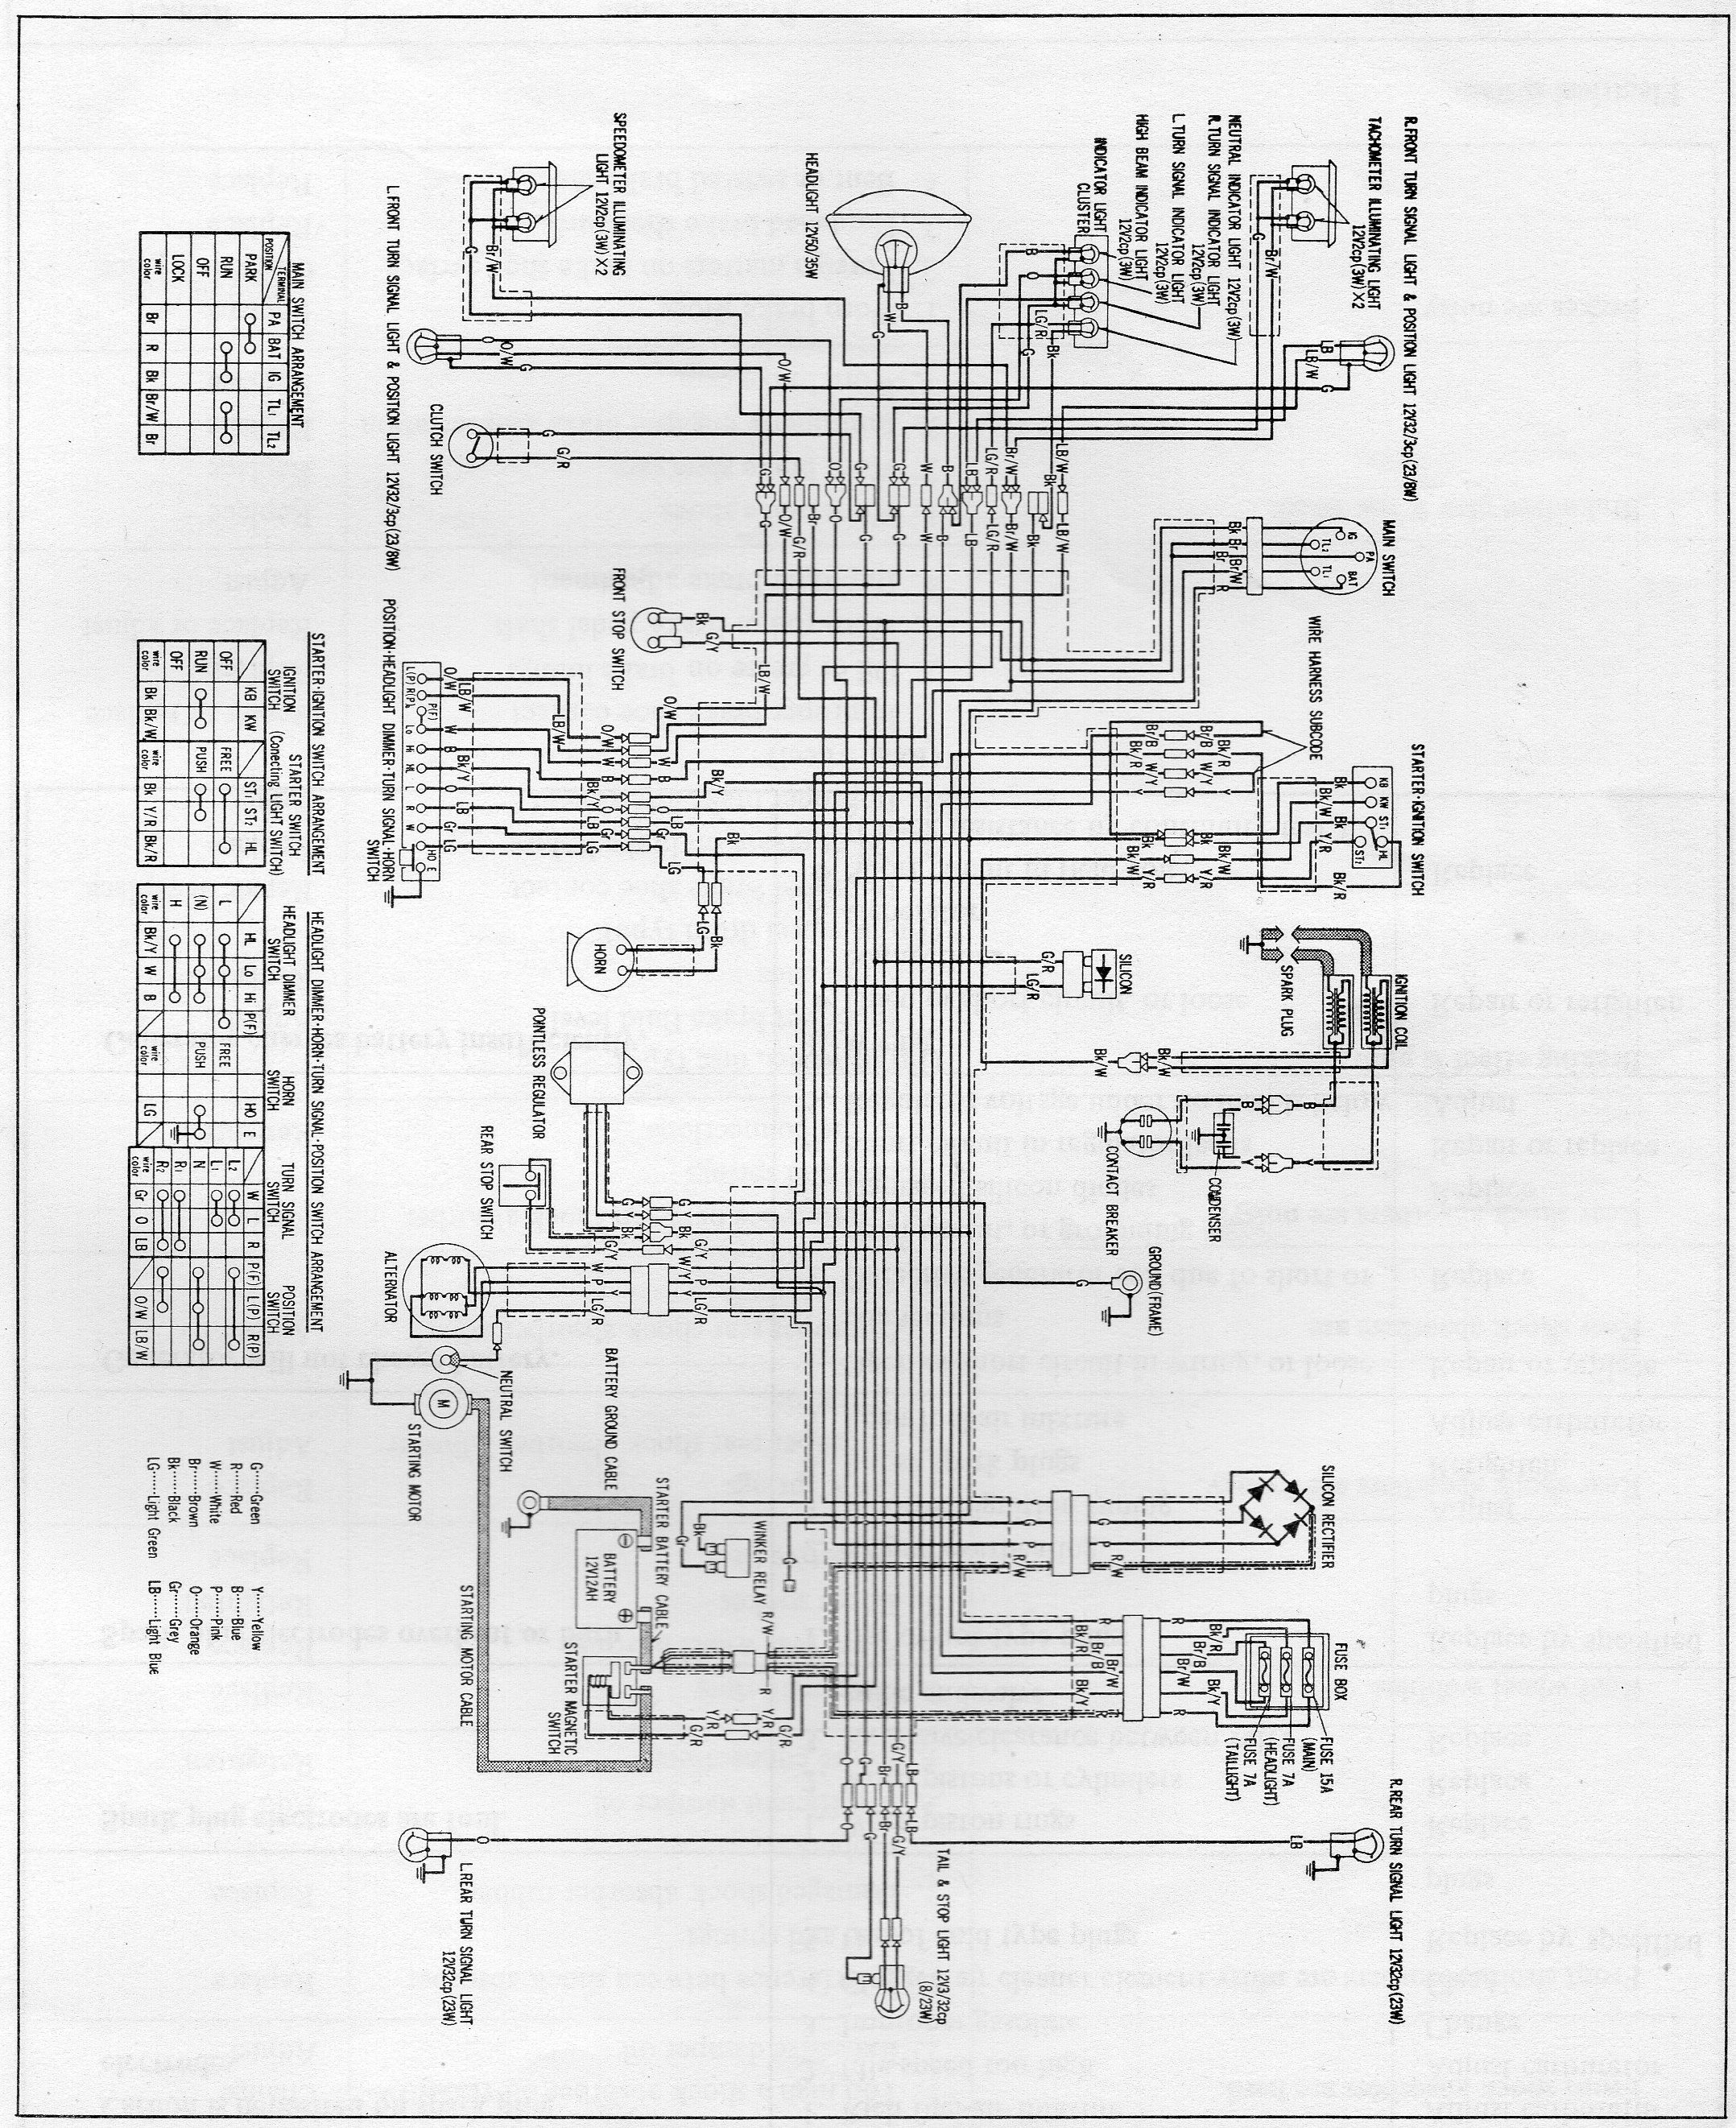 Wiring Diagram for 2009 Chevy Aveo 1.6 Diagram] How to Follow Wiring Diagrams Wiring Diagram Full Of Wiring Diagram for 2009 Chevy Aveo 1.6